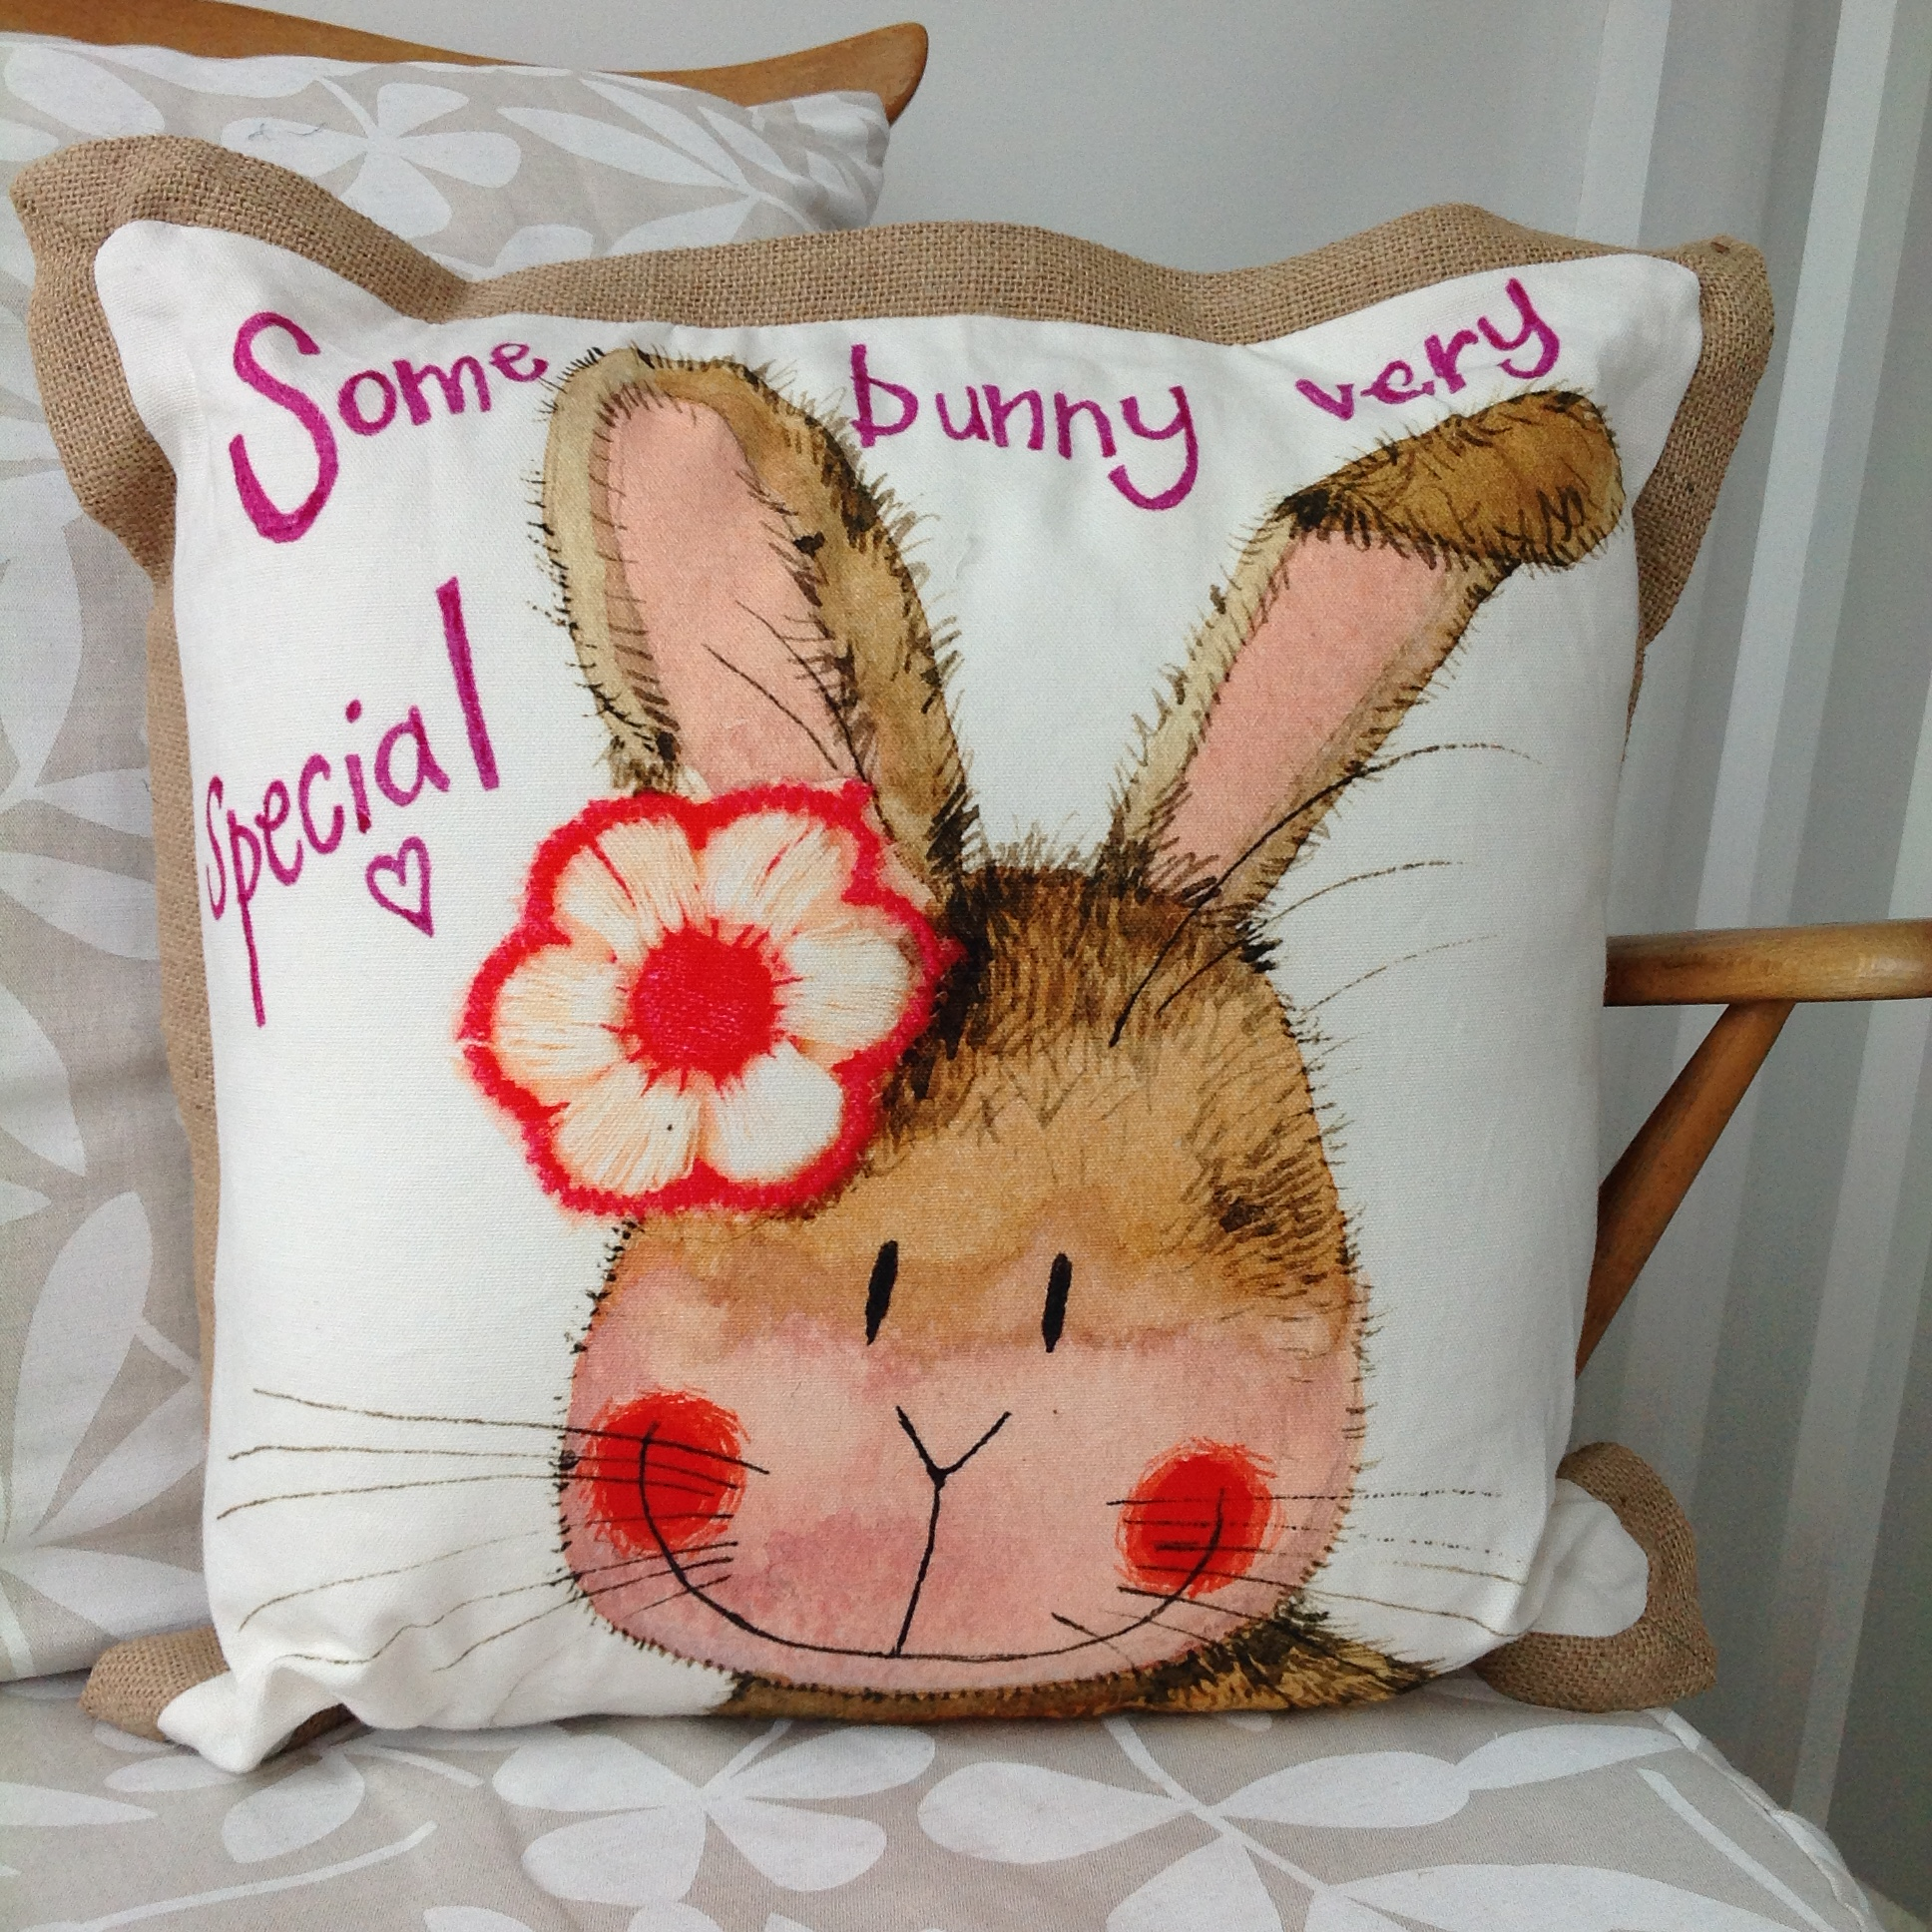 catalog/products/cushions/some-bunny-cushion.JPG